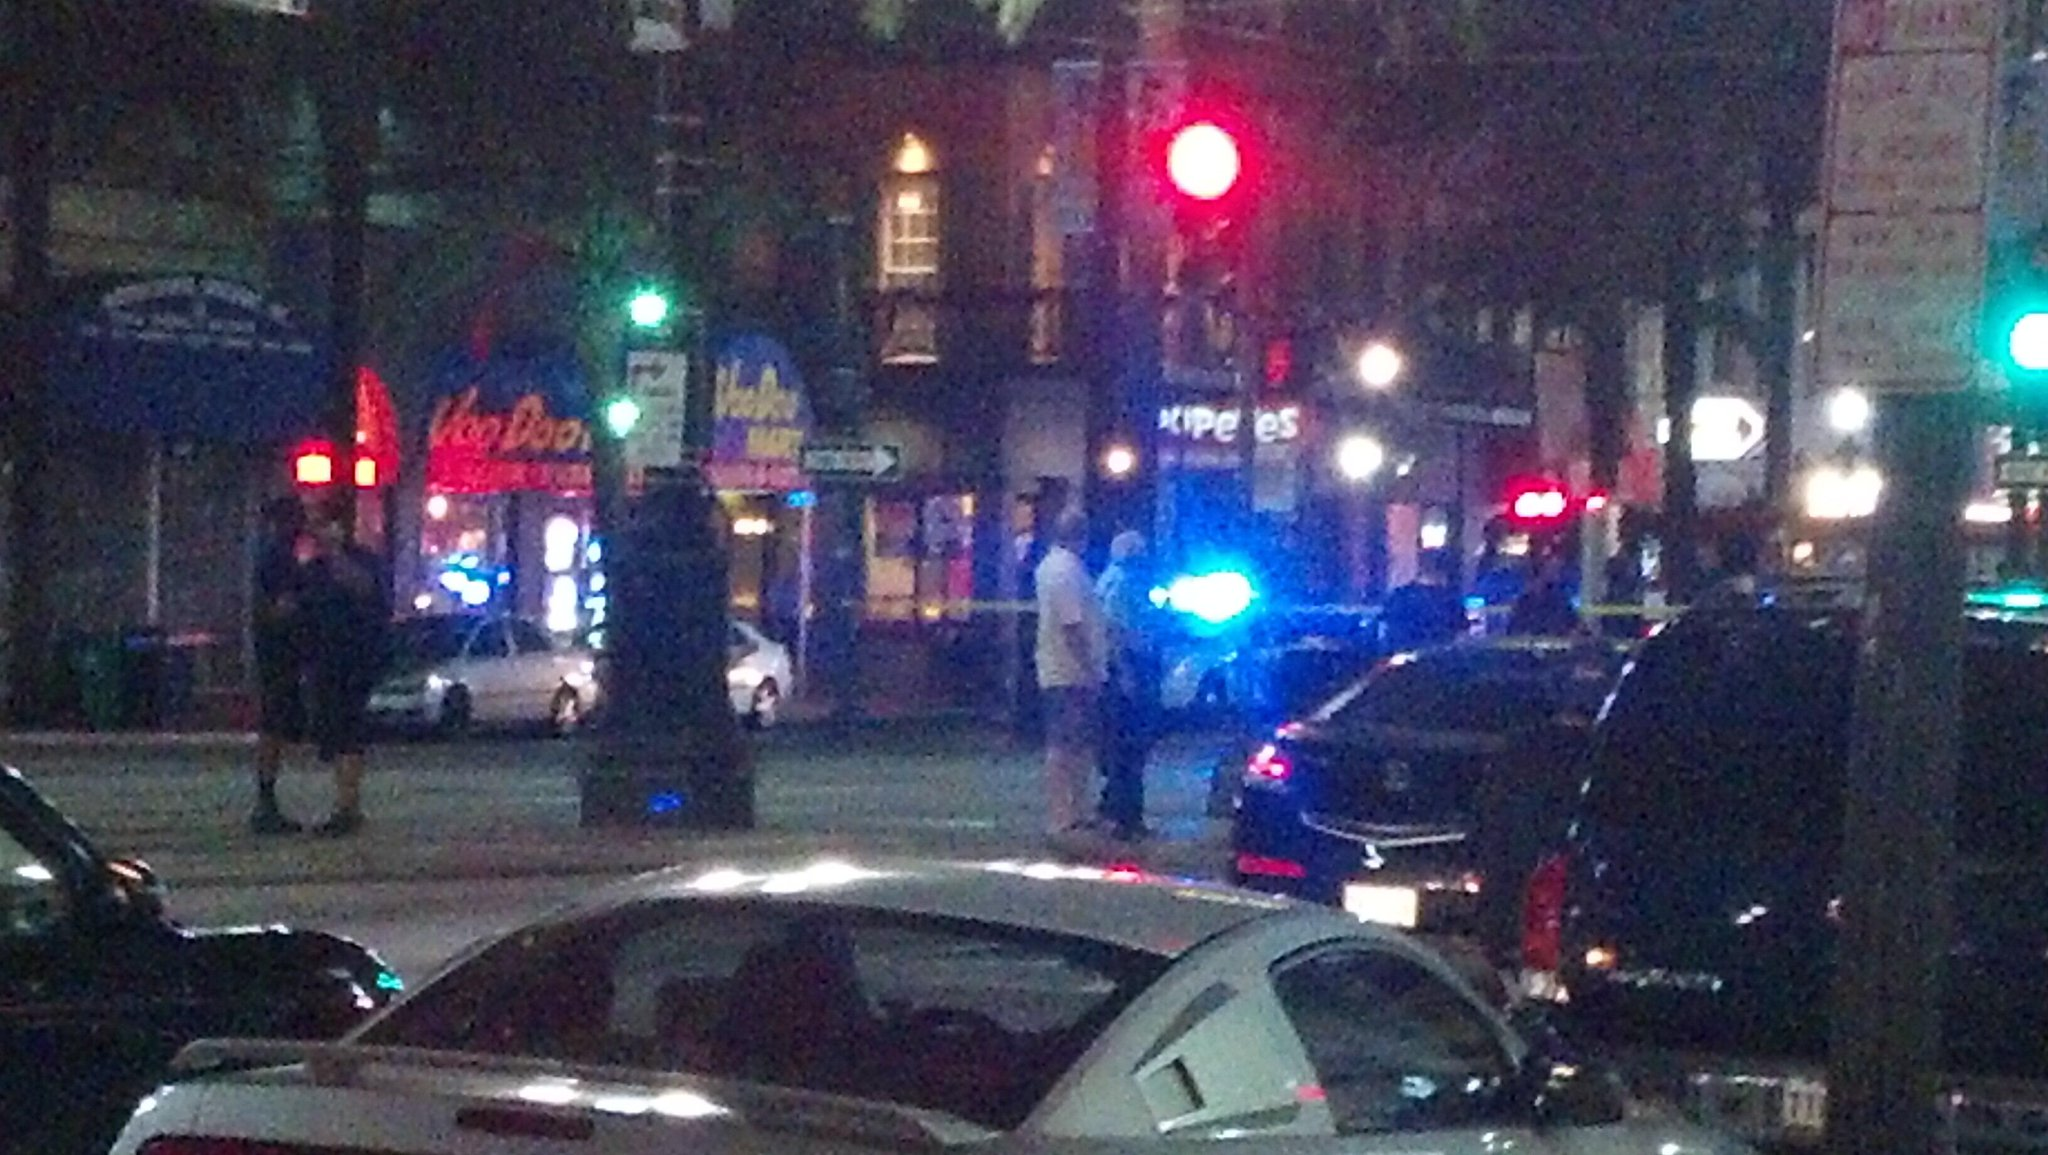 Twitter / MHernandezWWL: Bomb sniffing dogs at 600 block ...